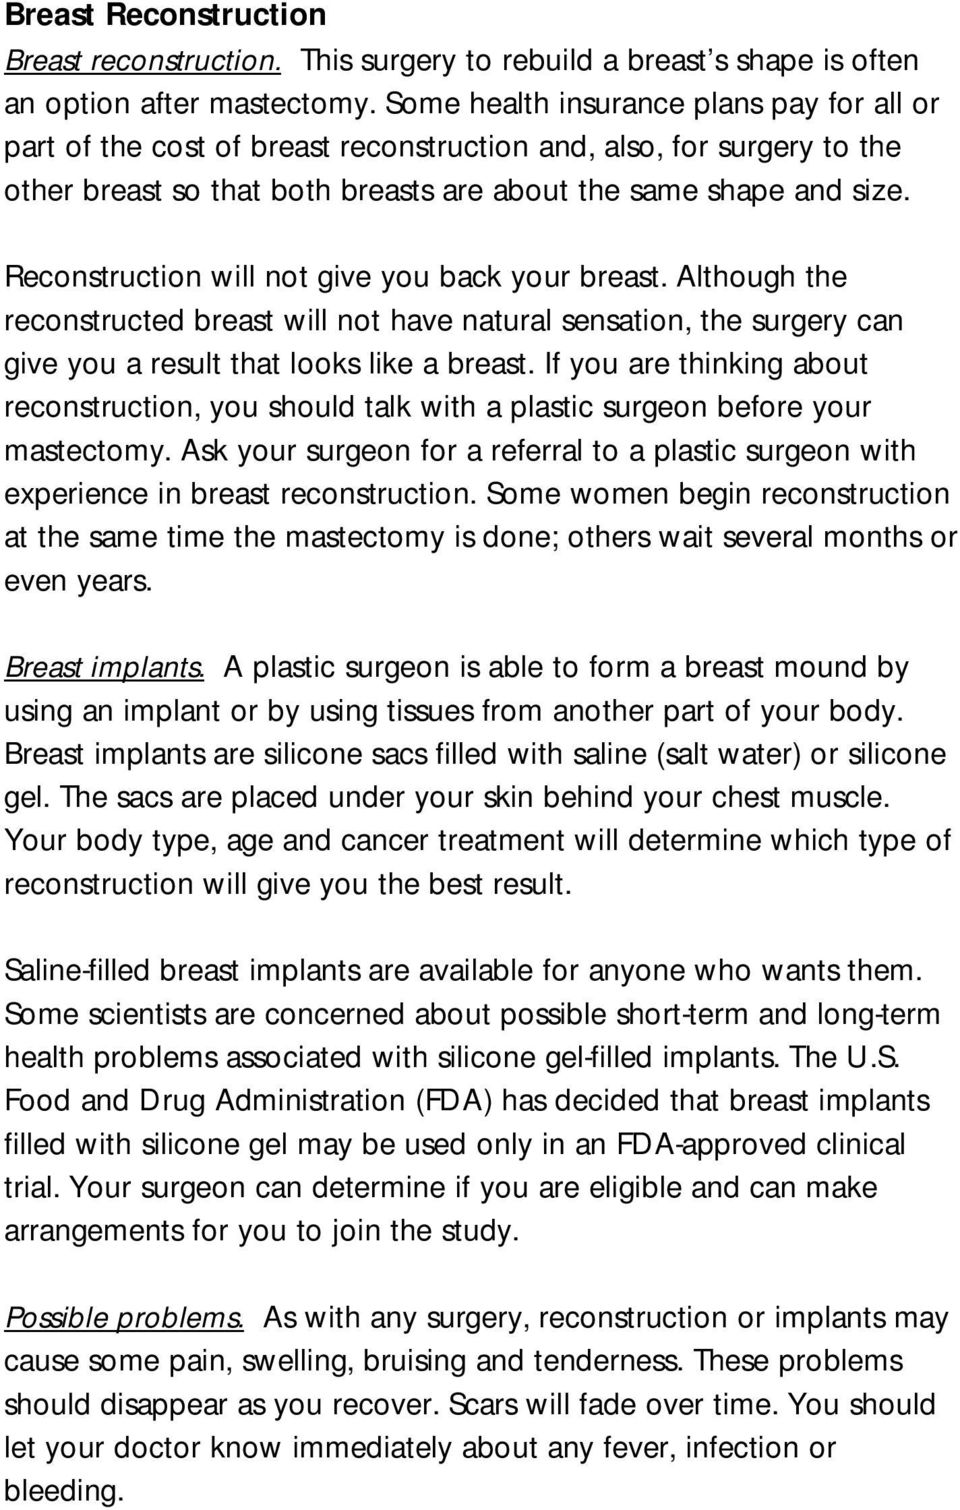 Reconstruction will not give you back your breast. Although the reconstructed breast will not have natural sensation, the surgery can give you a result that looks like a breast.